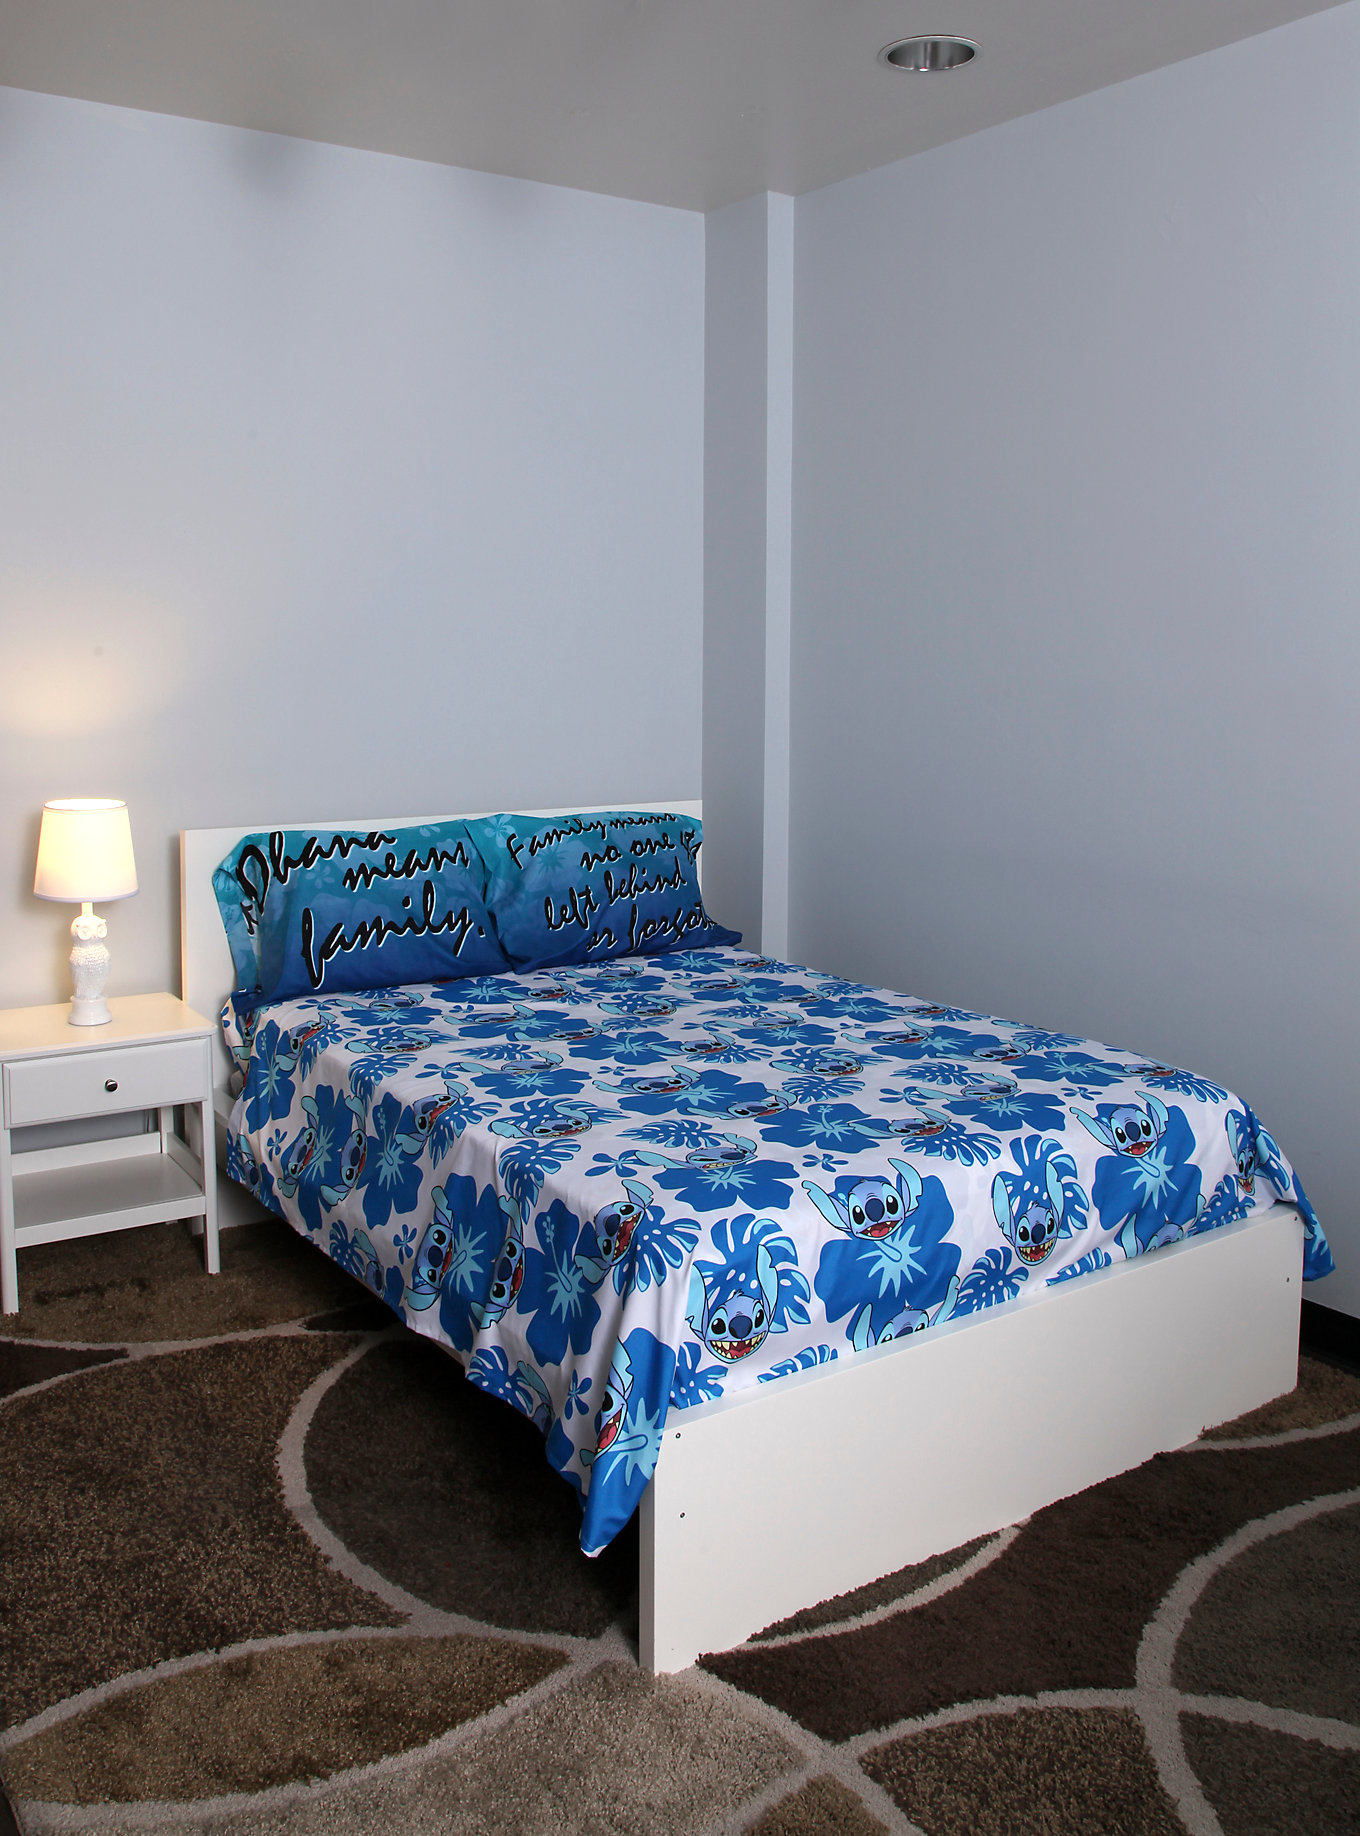 Elegant Patterned Lilo and Stitch Bed Set